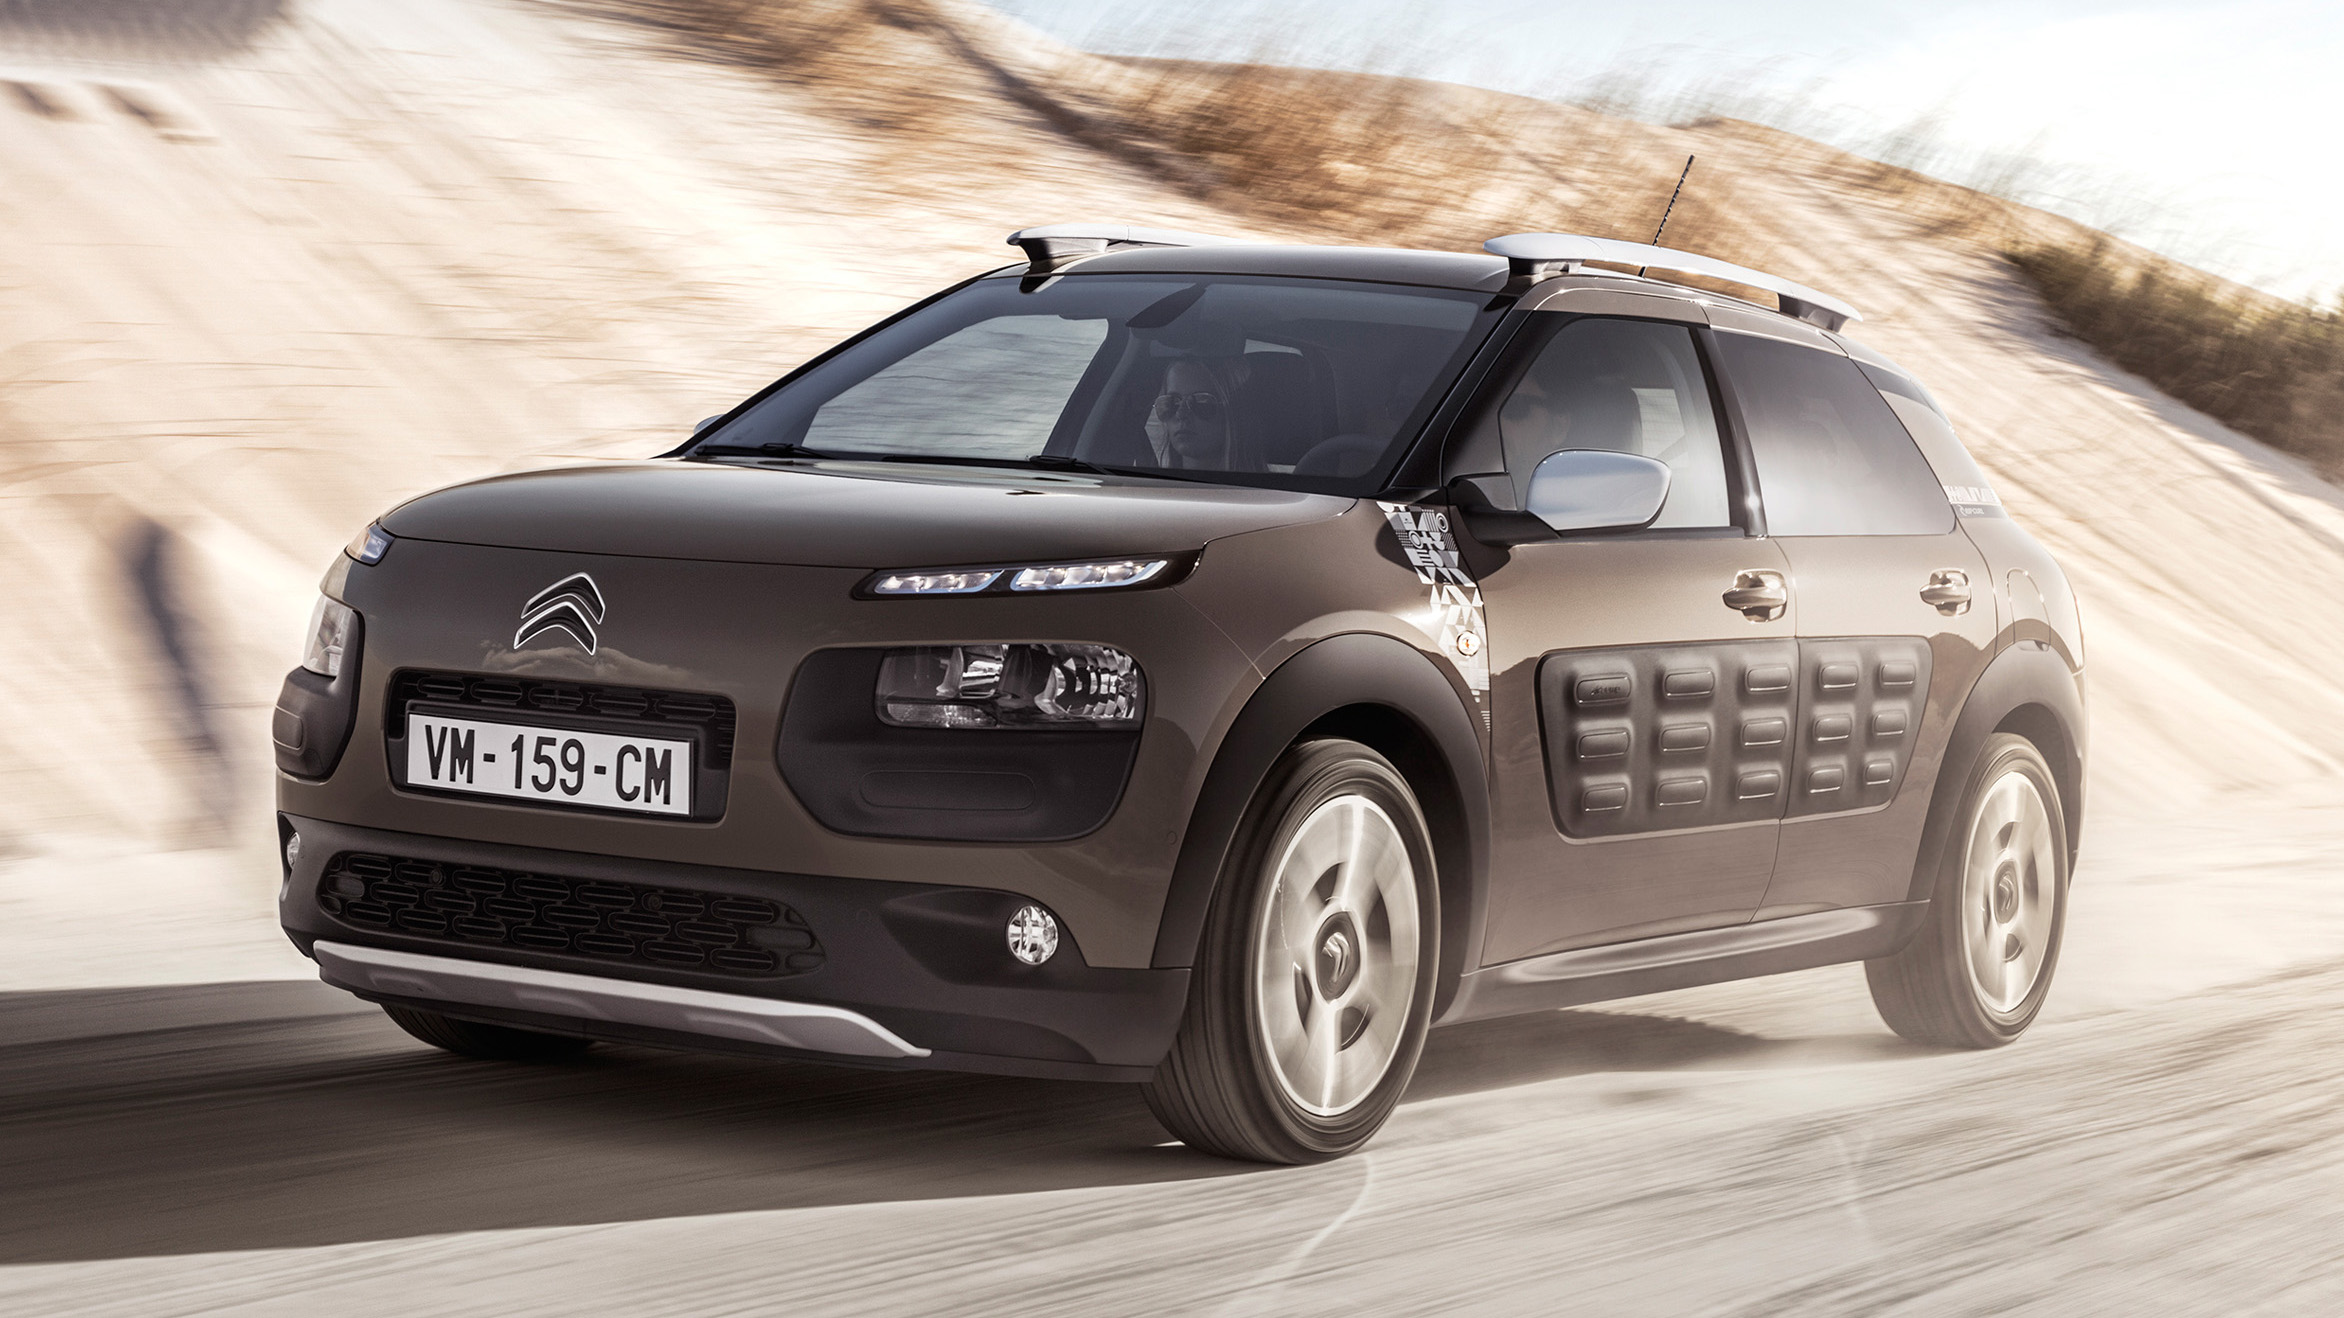 Review The Citroen C4 Cactus Rip Curl Top Gear